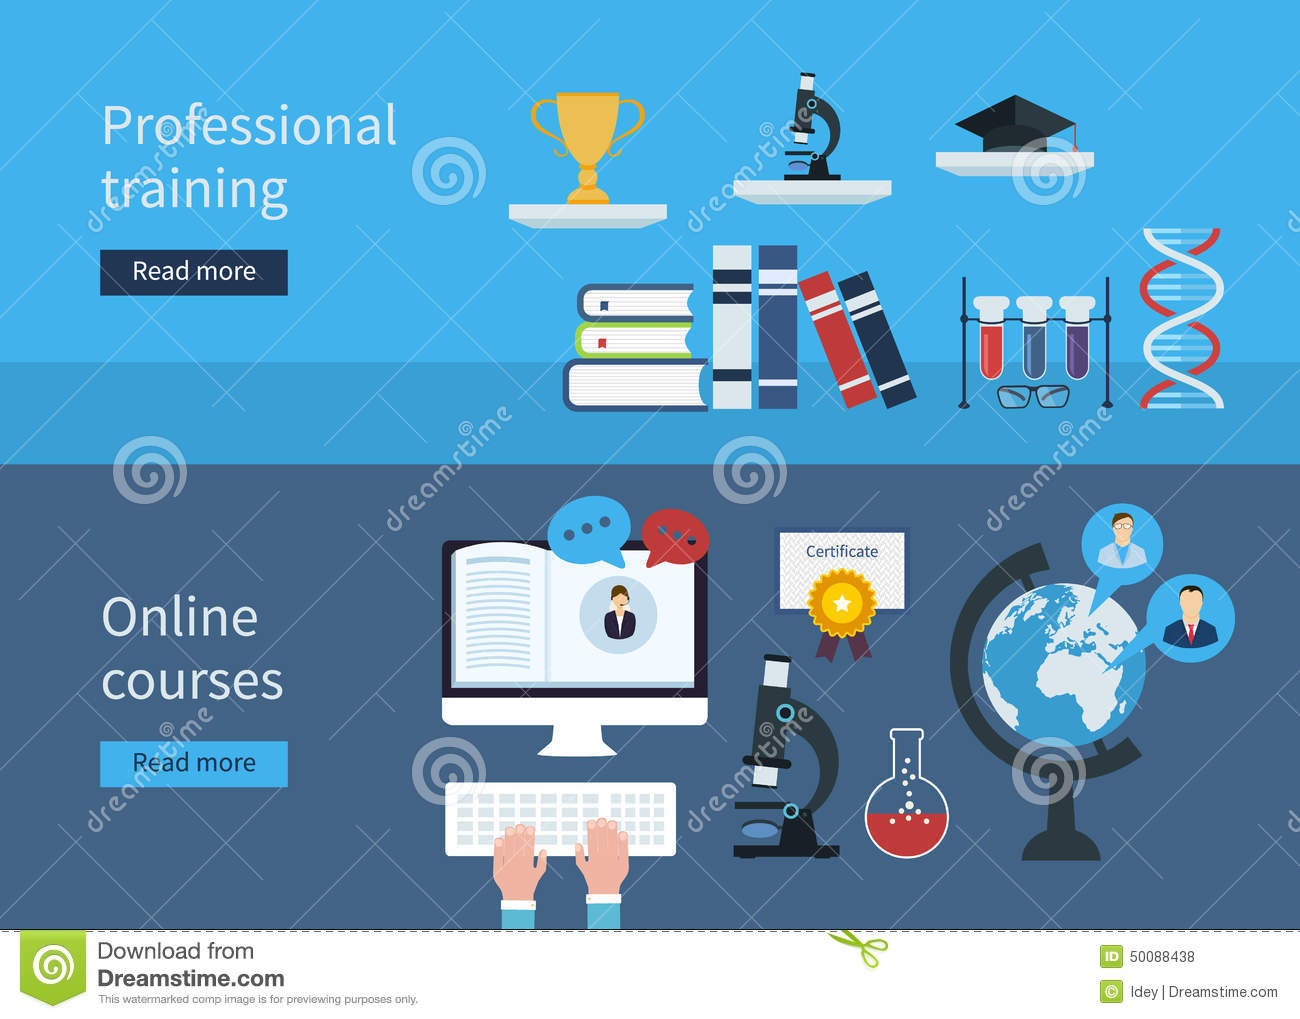 professional-training-online-courses-flat-stylish-design-concept-flat-vector-elements-web-applications-banners-50088438.jpg